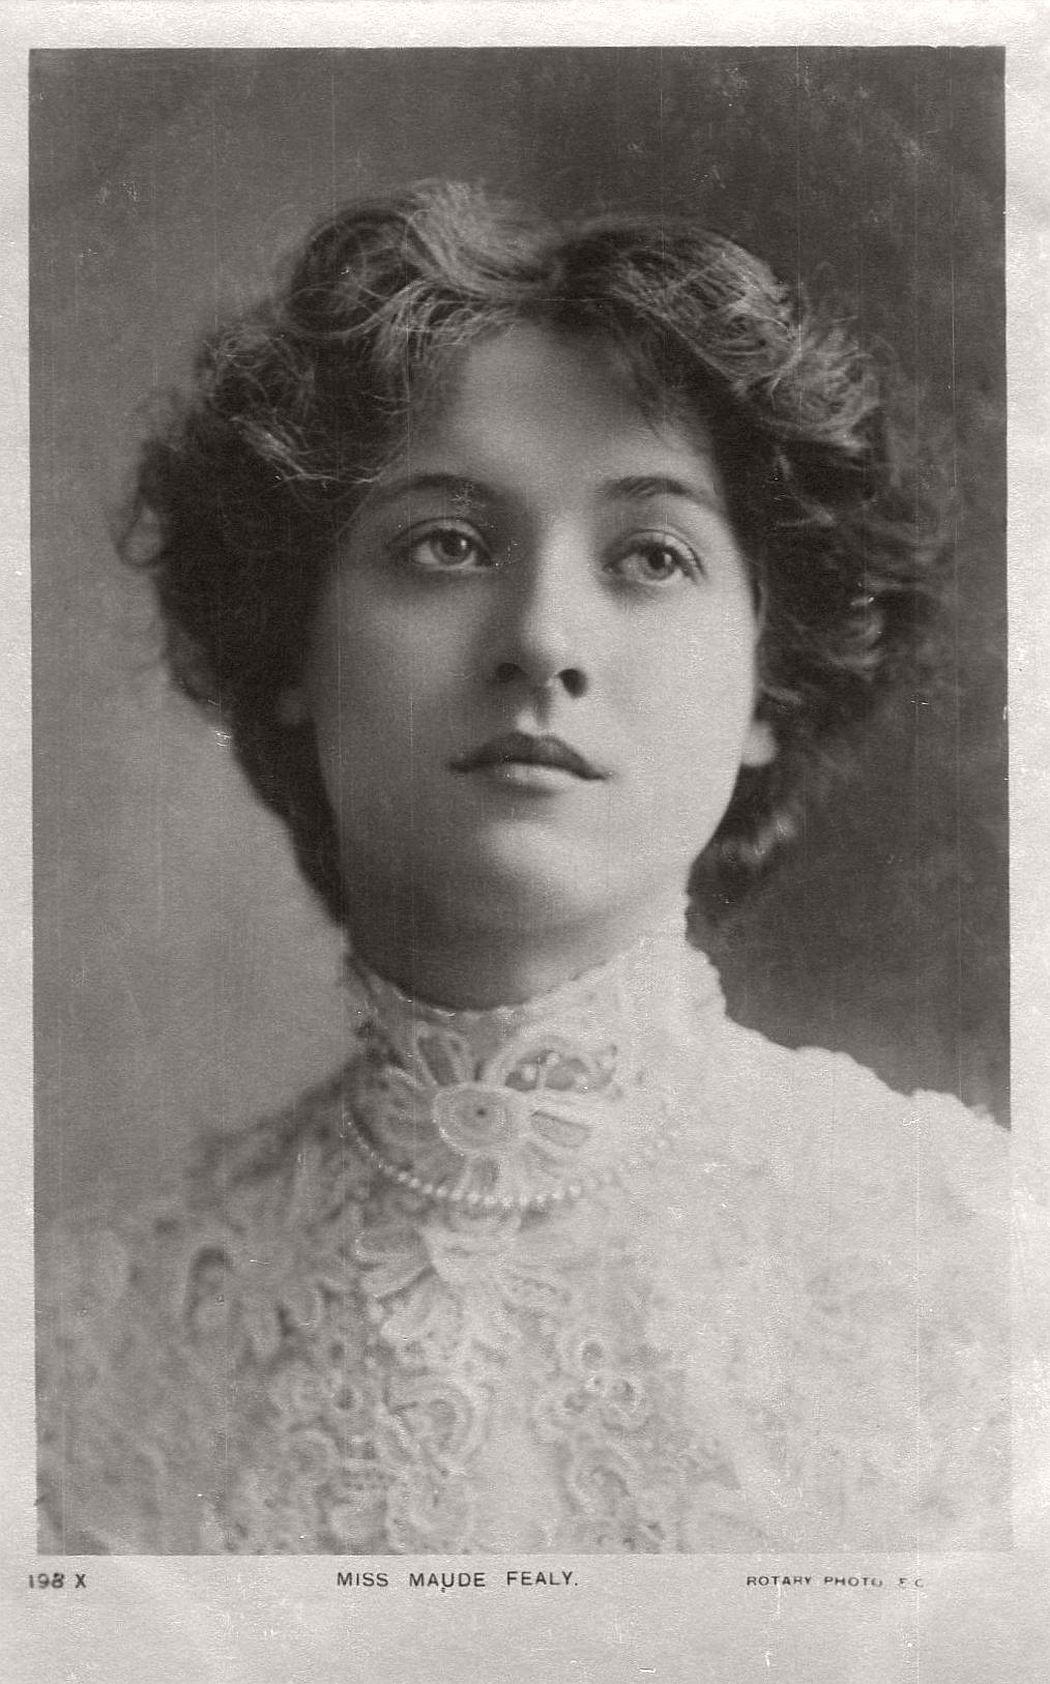 vintage-postcard-of-actress-miss-maude-fealy-1900s-early-xx-century-15